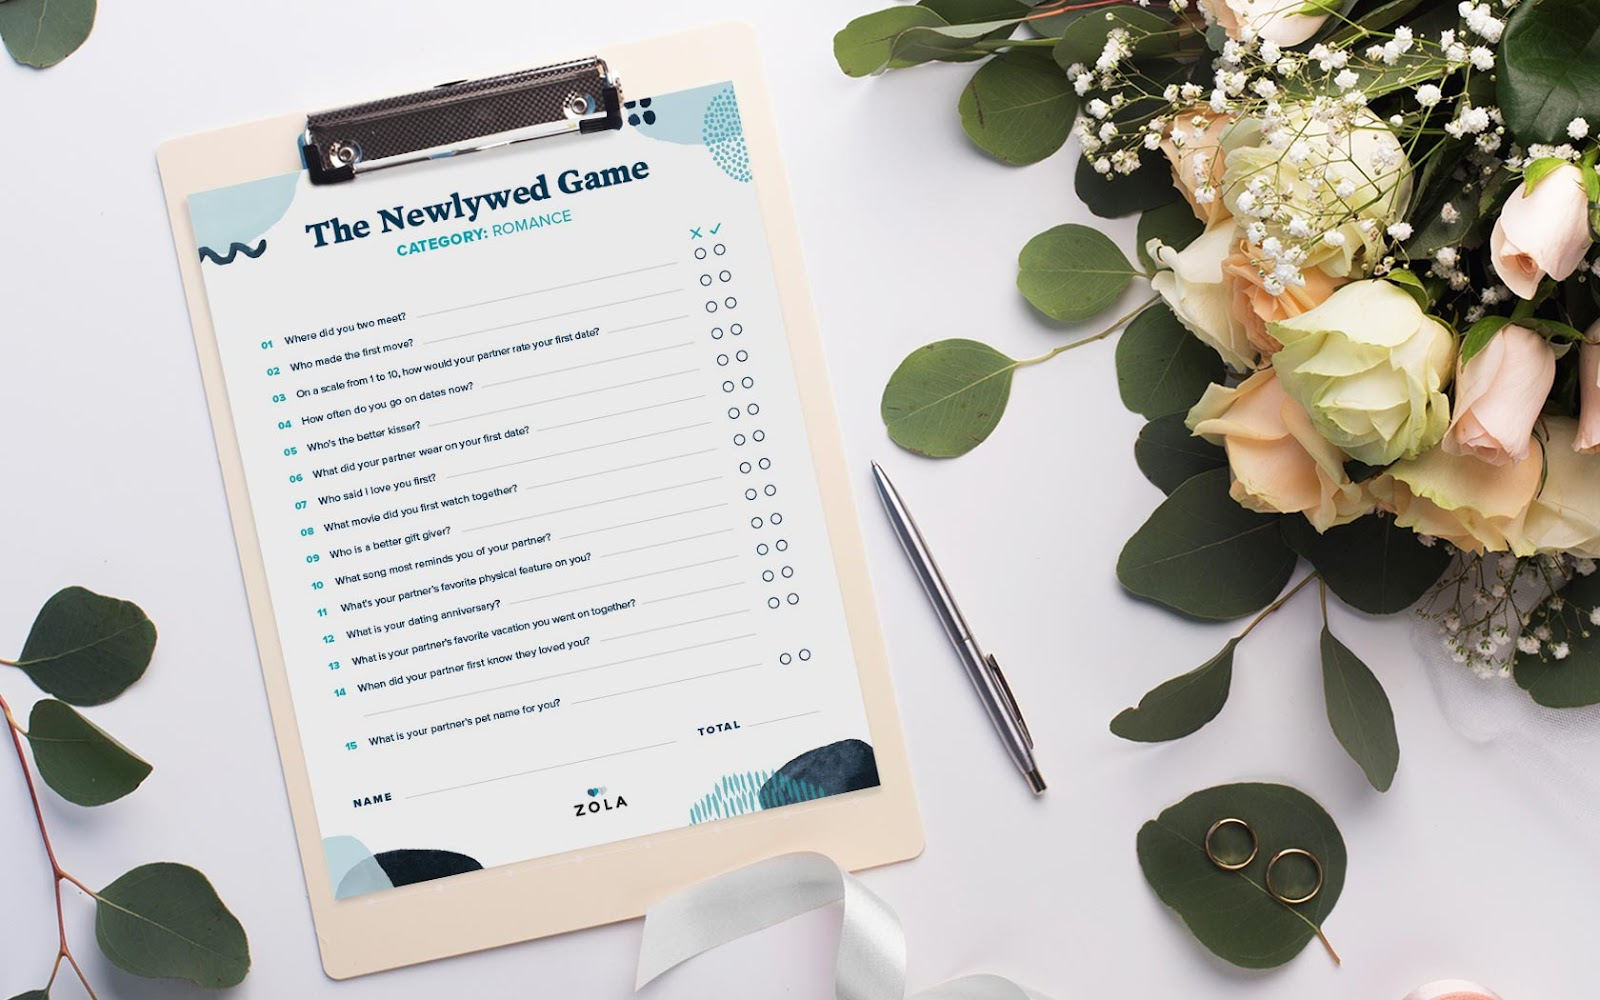 Clipboard displaying newlywed game questions